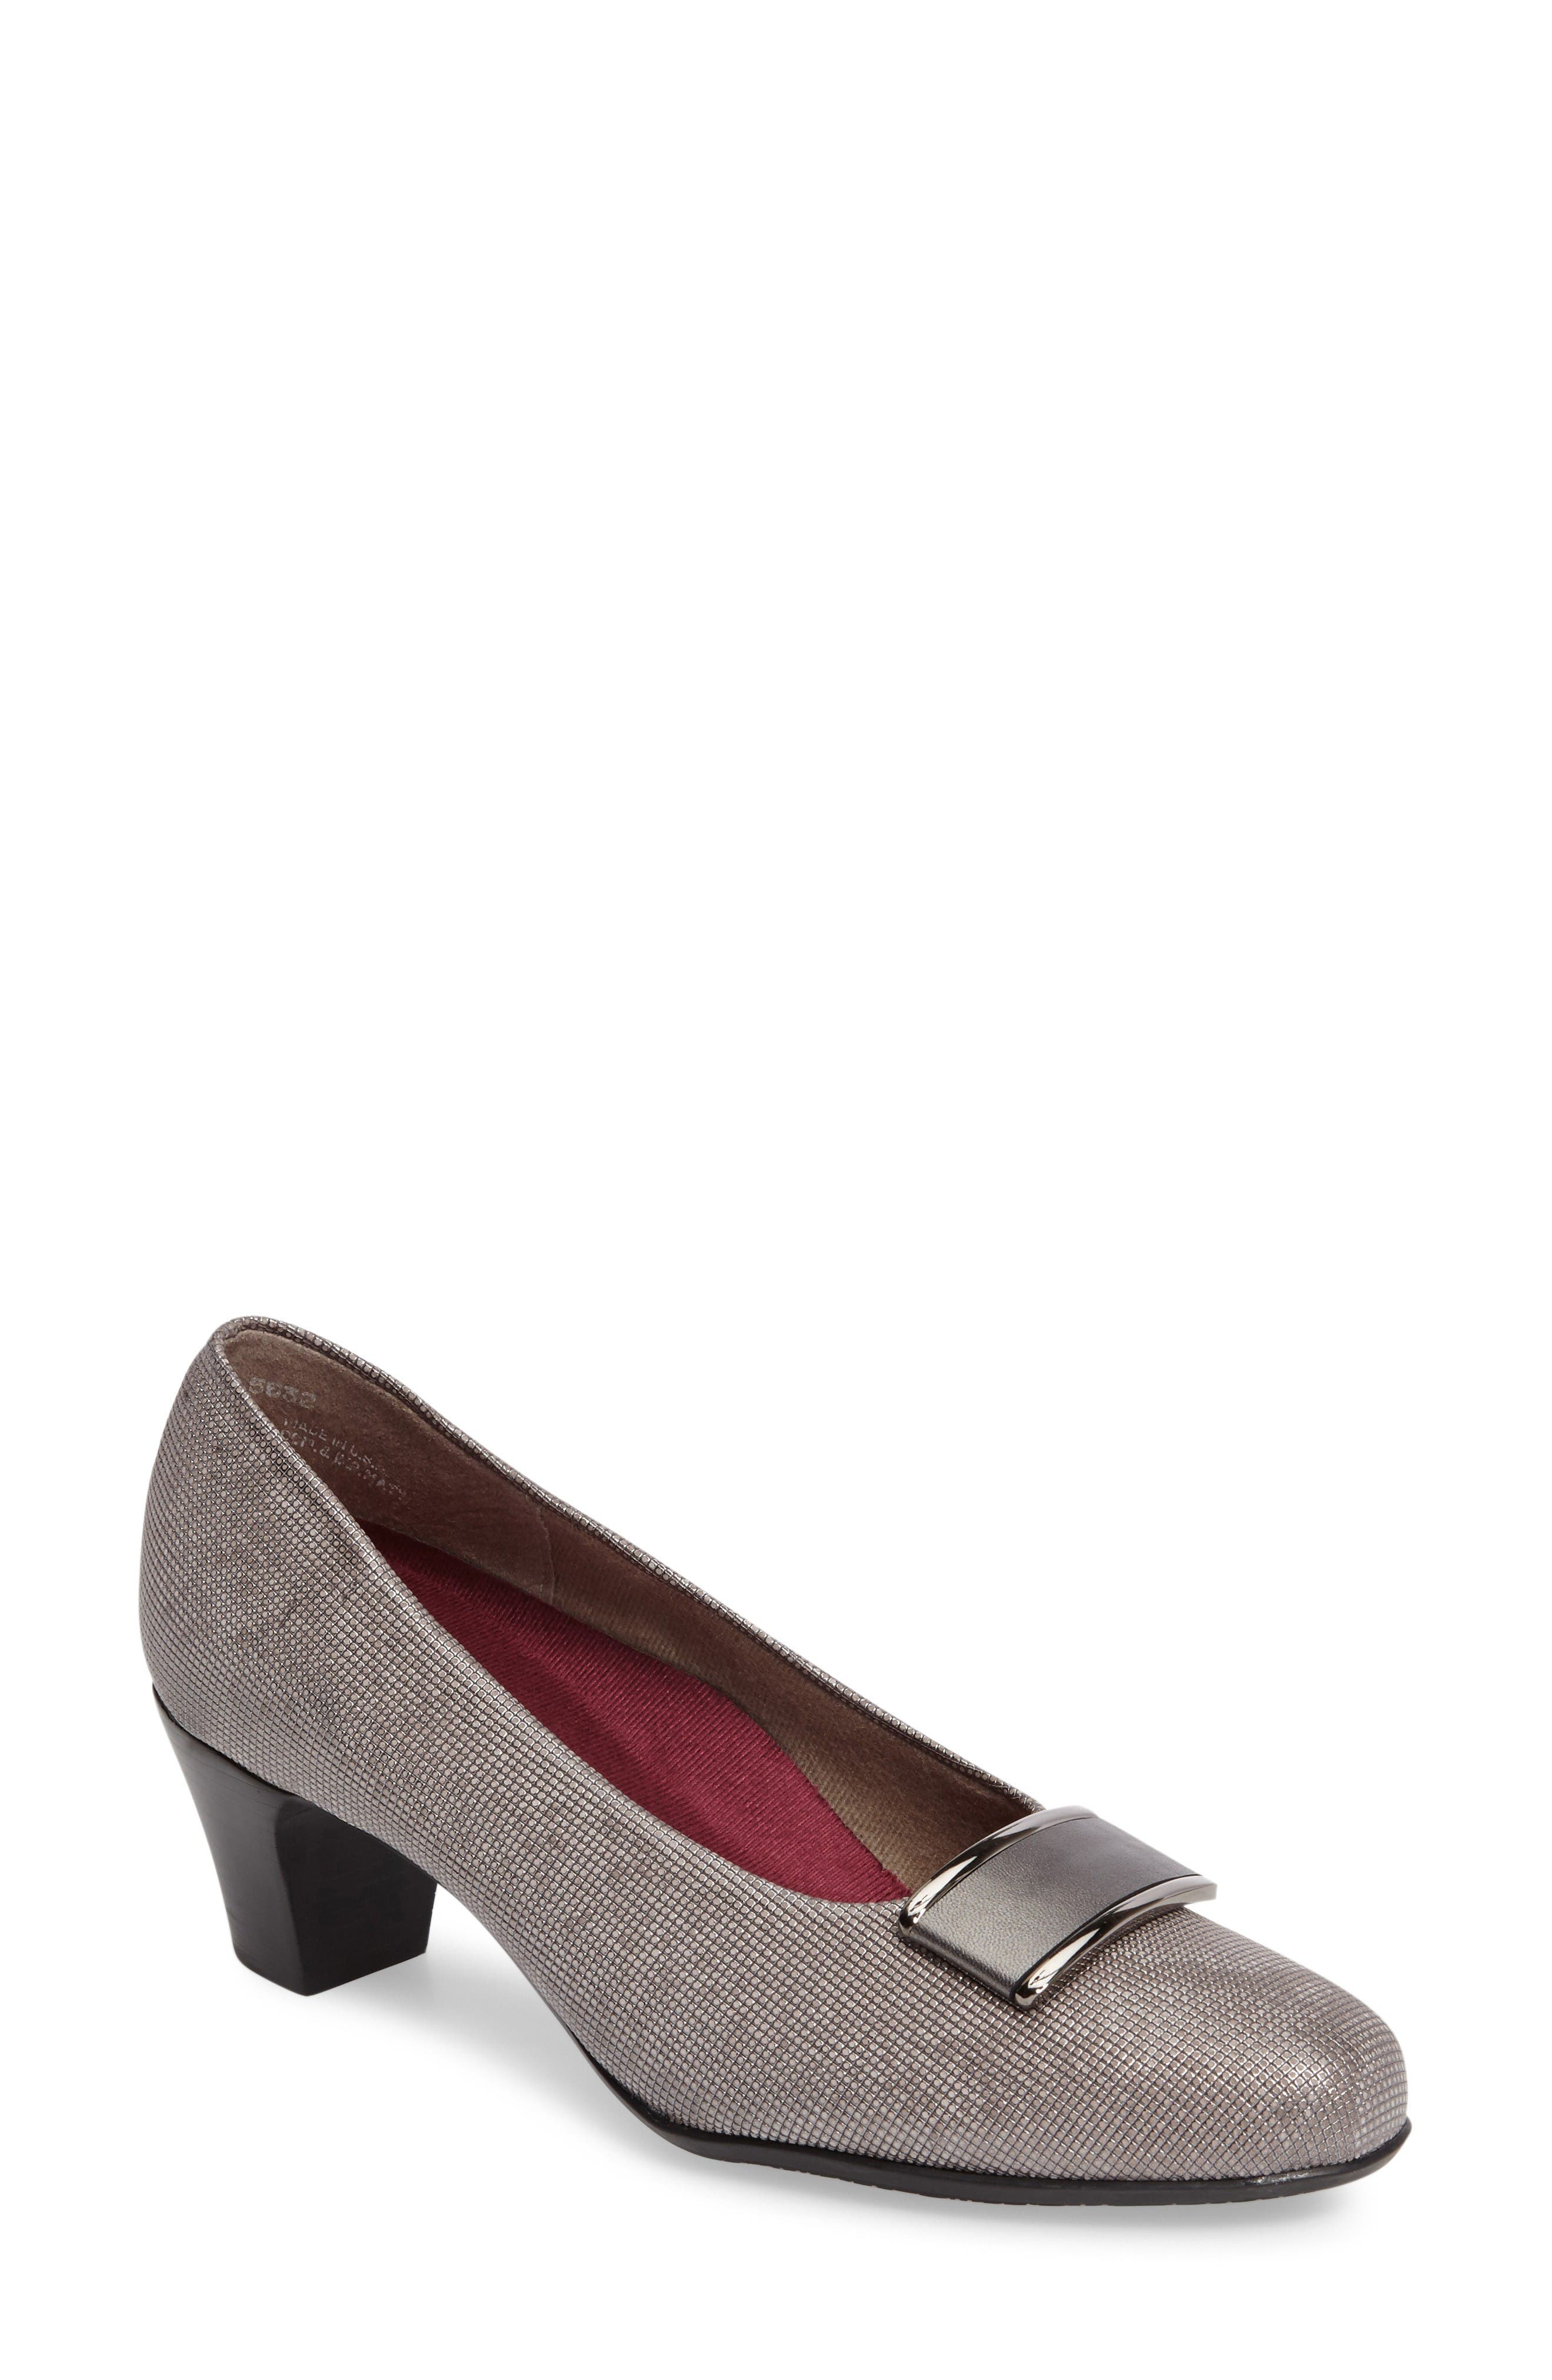 Munro Mara Pump (Women)